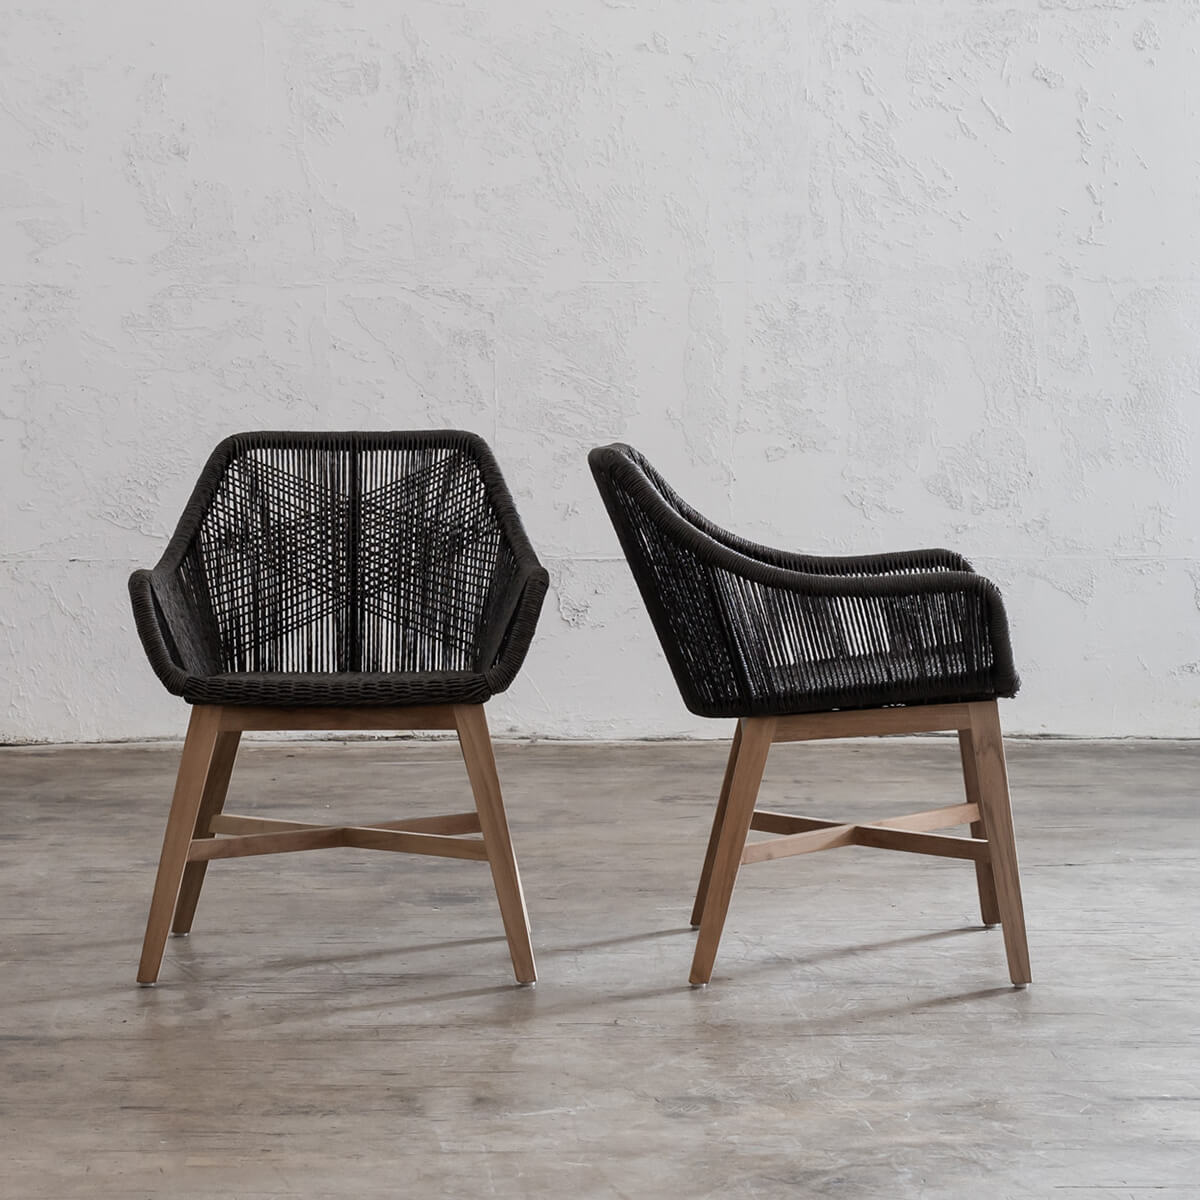 Inizia Woven Rattan Indoor Outdoor Dining Chair Monument Black